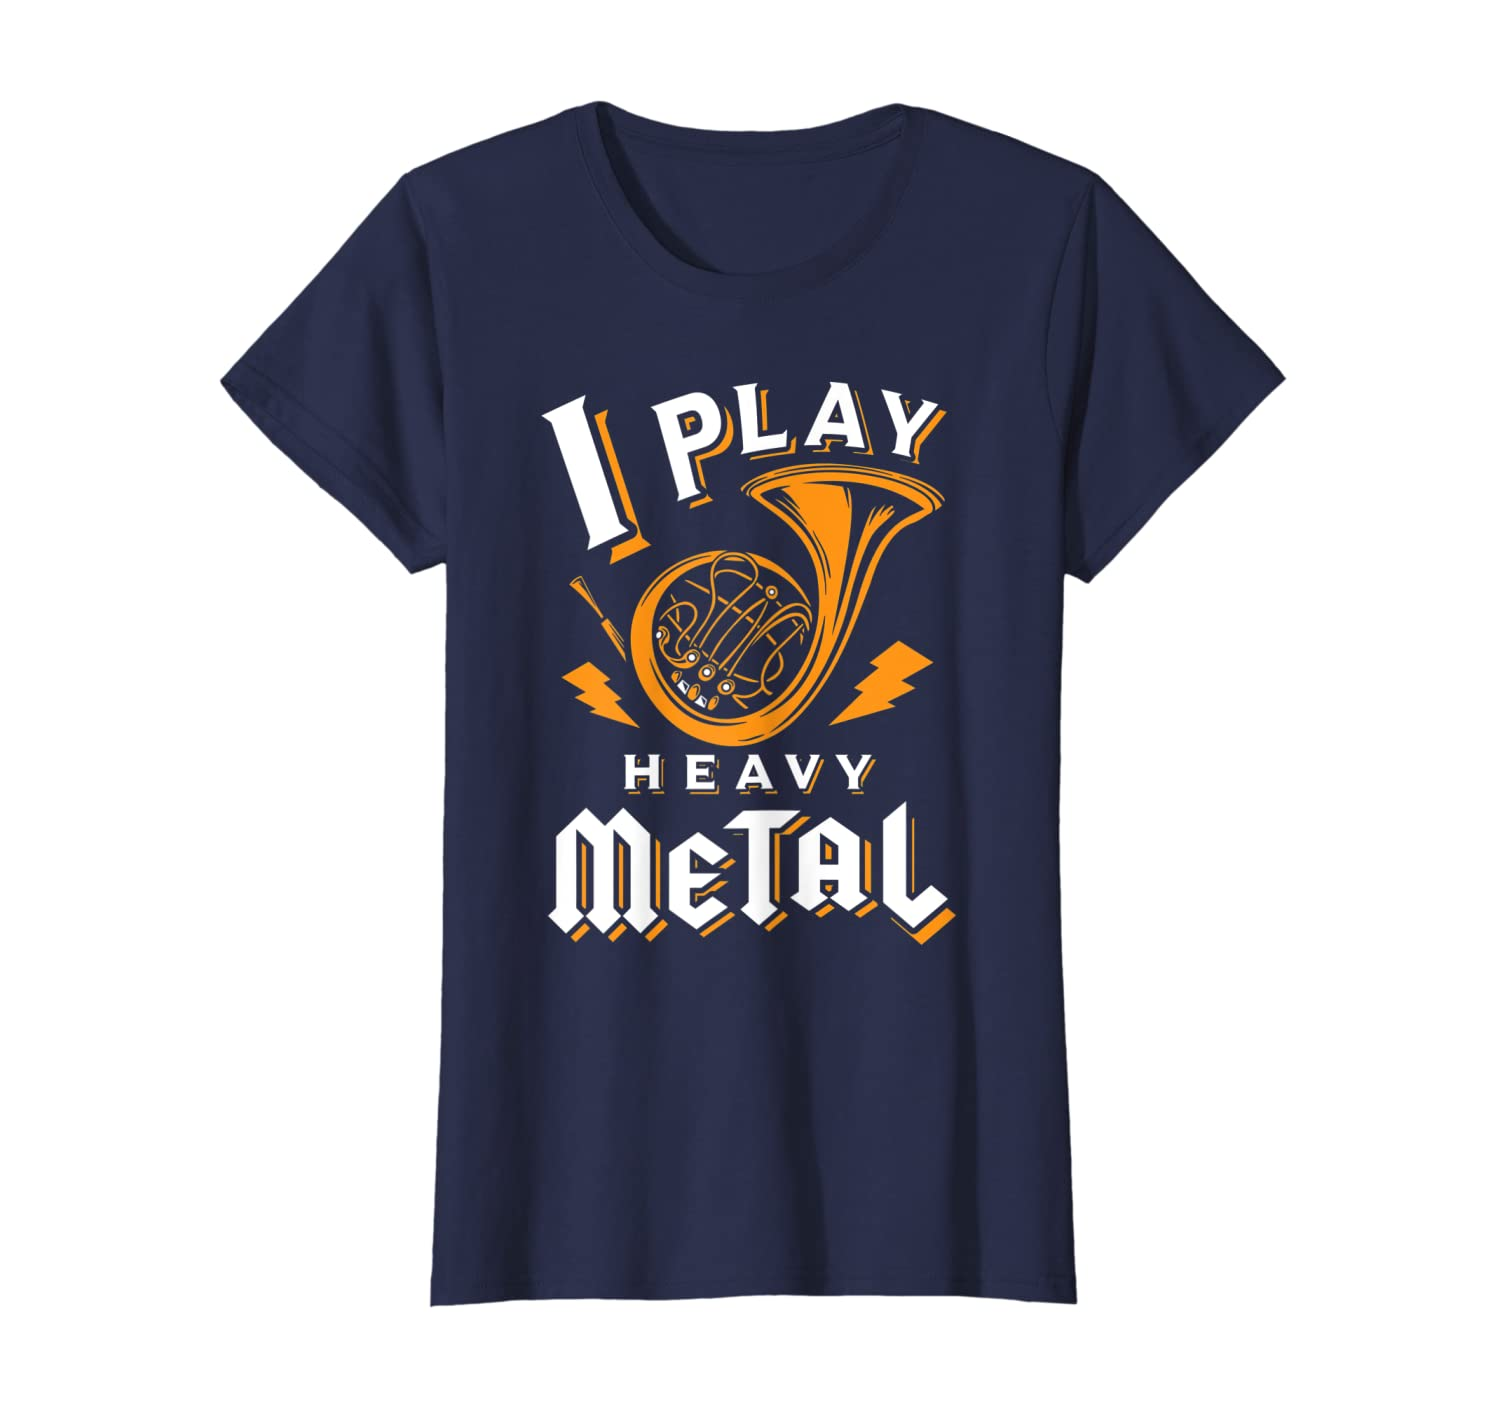 b3b74cf3 Amazon.com: Funny French Horn Shirt - I Play Heavy Metal: Clothing